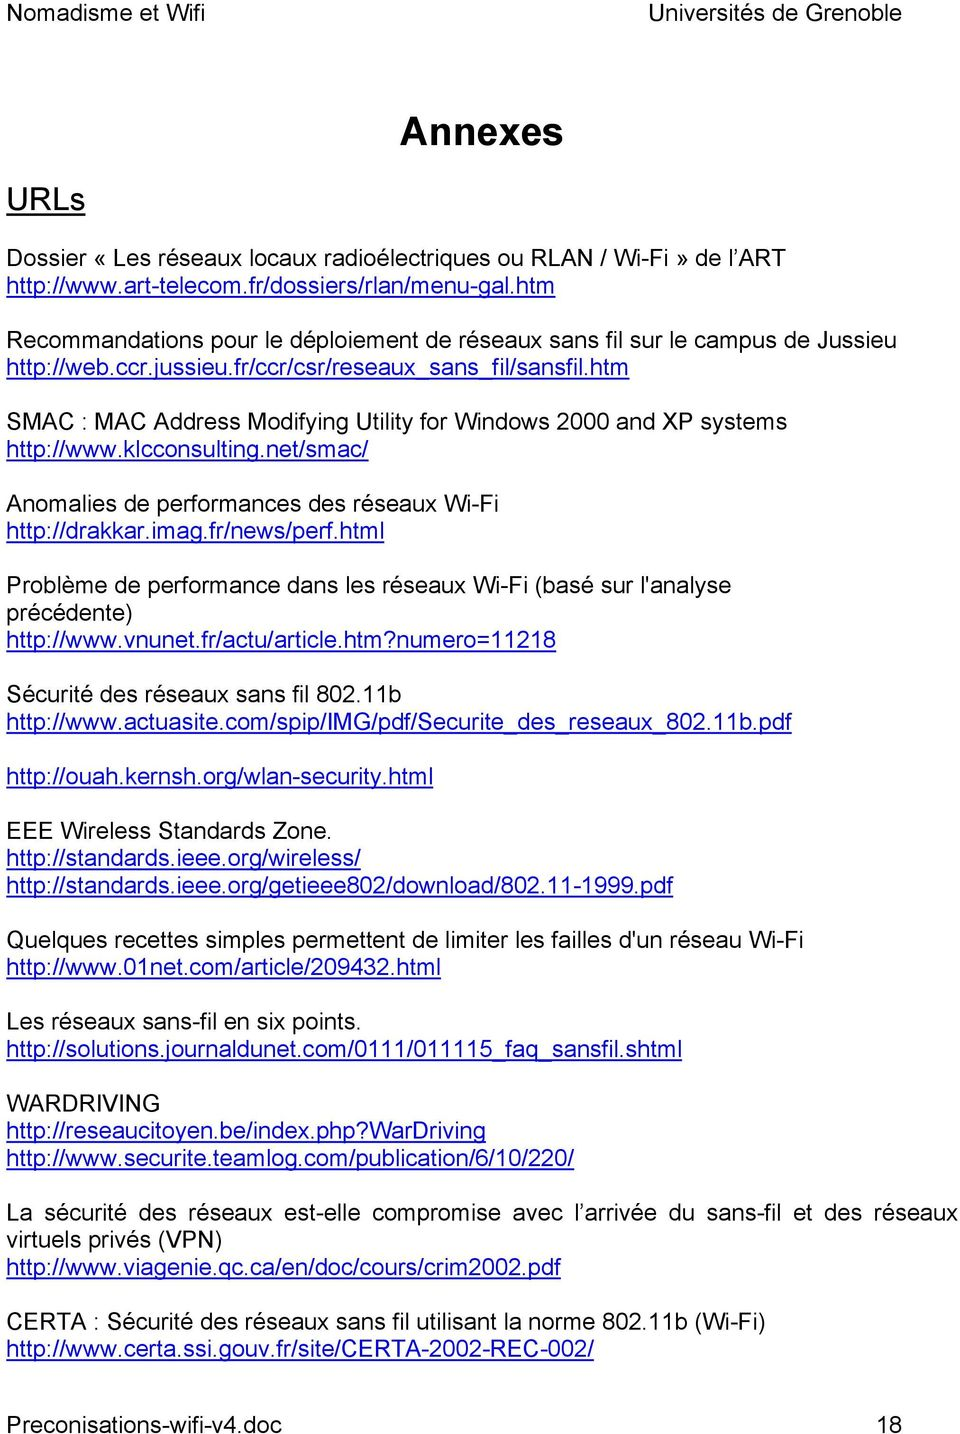 htm SMAC : MAC Address Modifying Utility for Windows 2000 and XP systems http://www.klcconsulting.net/smac/ Anomalies de performances des réseaux Wi-Fi http://drakkar.imag.fr/news/perf.